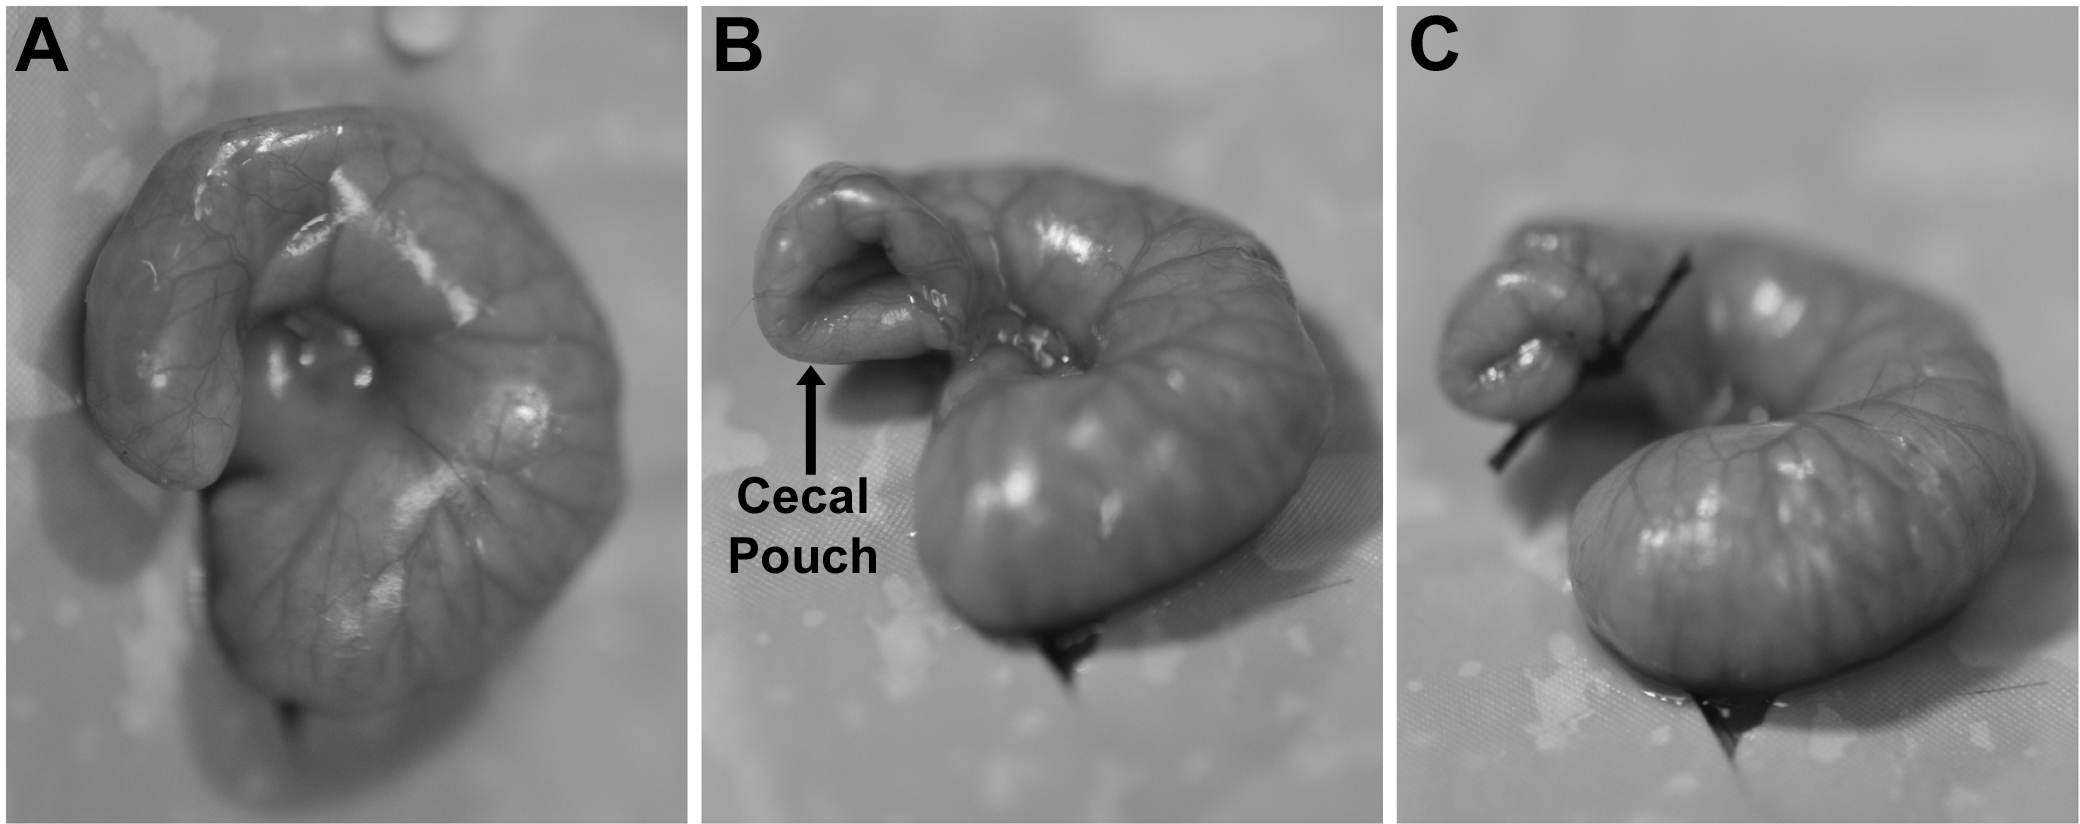 Ssat A Novel Method To Generate Colon Cancer Orthotopic Tumors In Mice Implantation Using The Cecal Pouch Technique